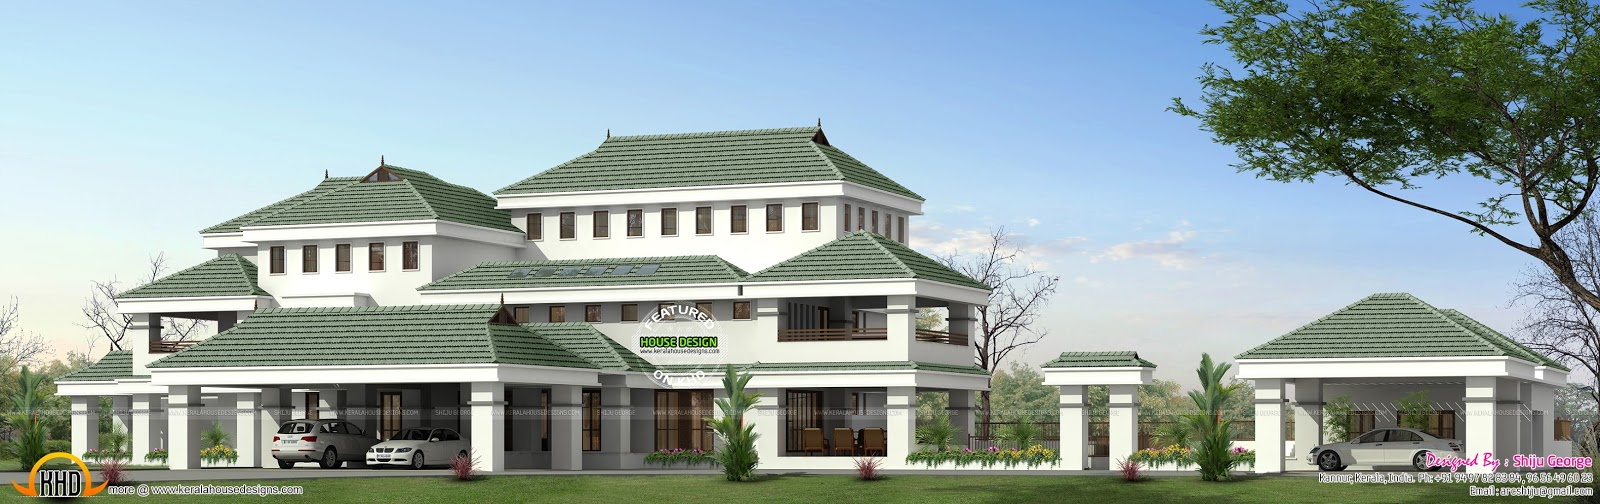 10000 sq ft house plan kerala home design and floor plans for 10000 square foot home plans